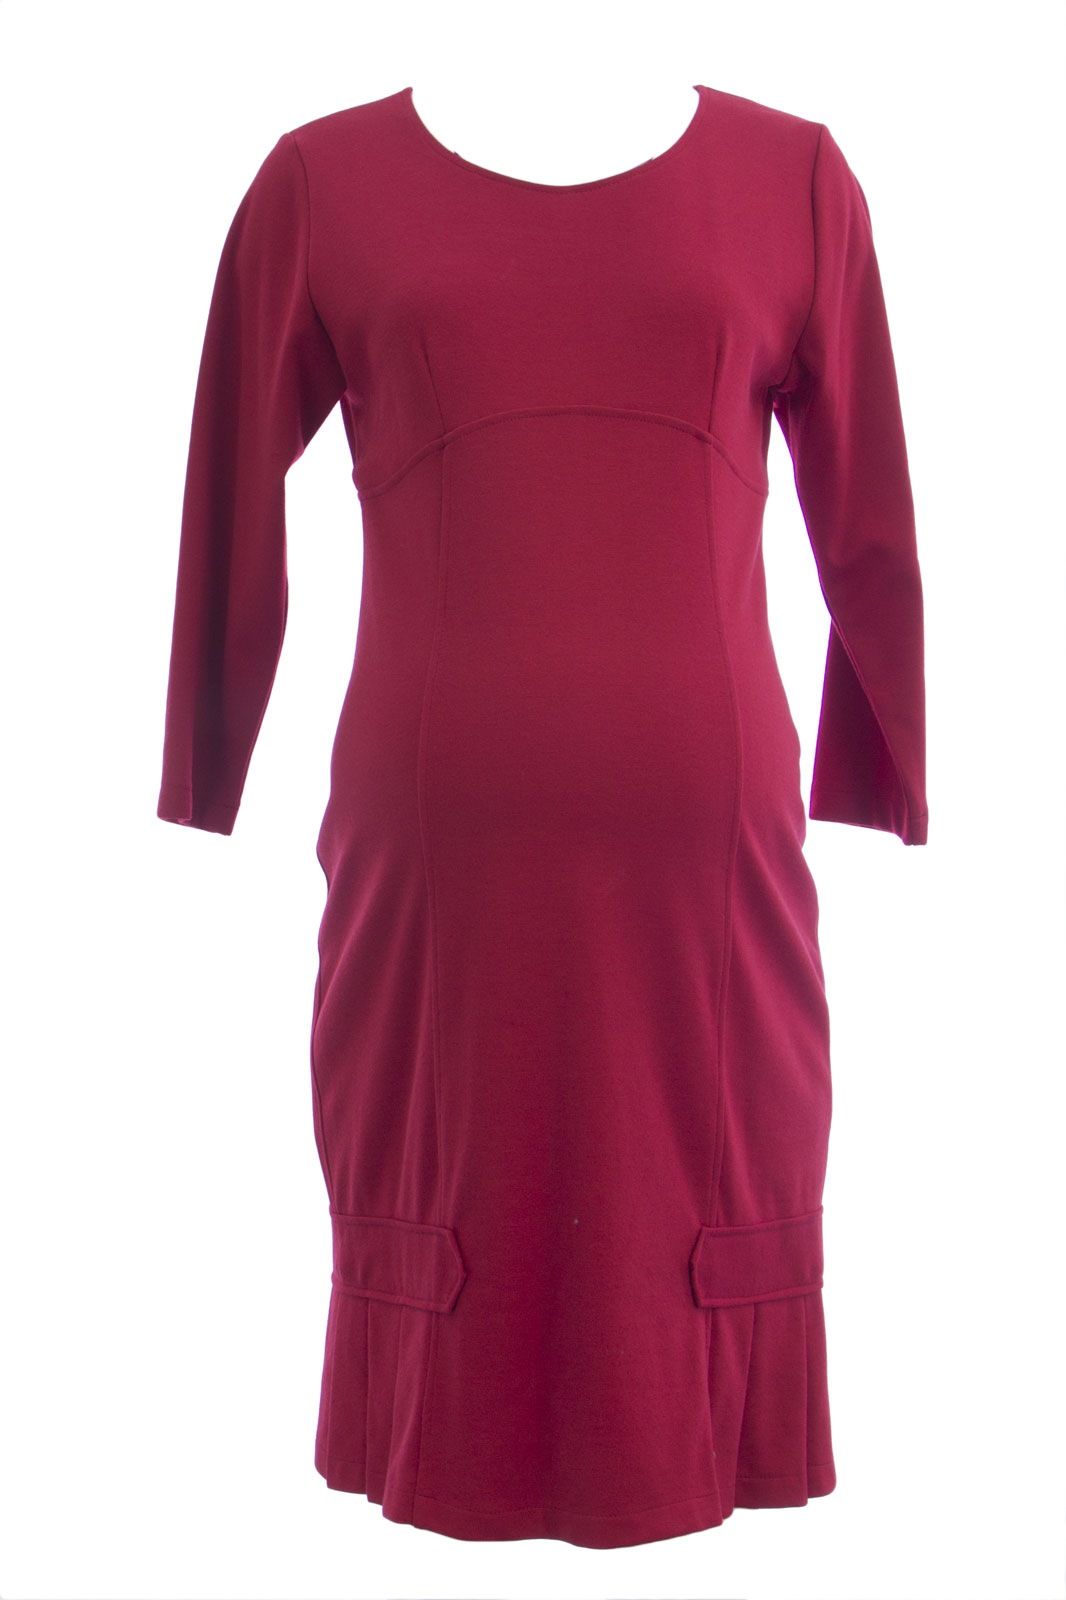 Olian maternity womens pleated hem accent 34 sleeve dress s red picture 2 of 3 ombrellifo Choice Image